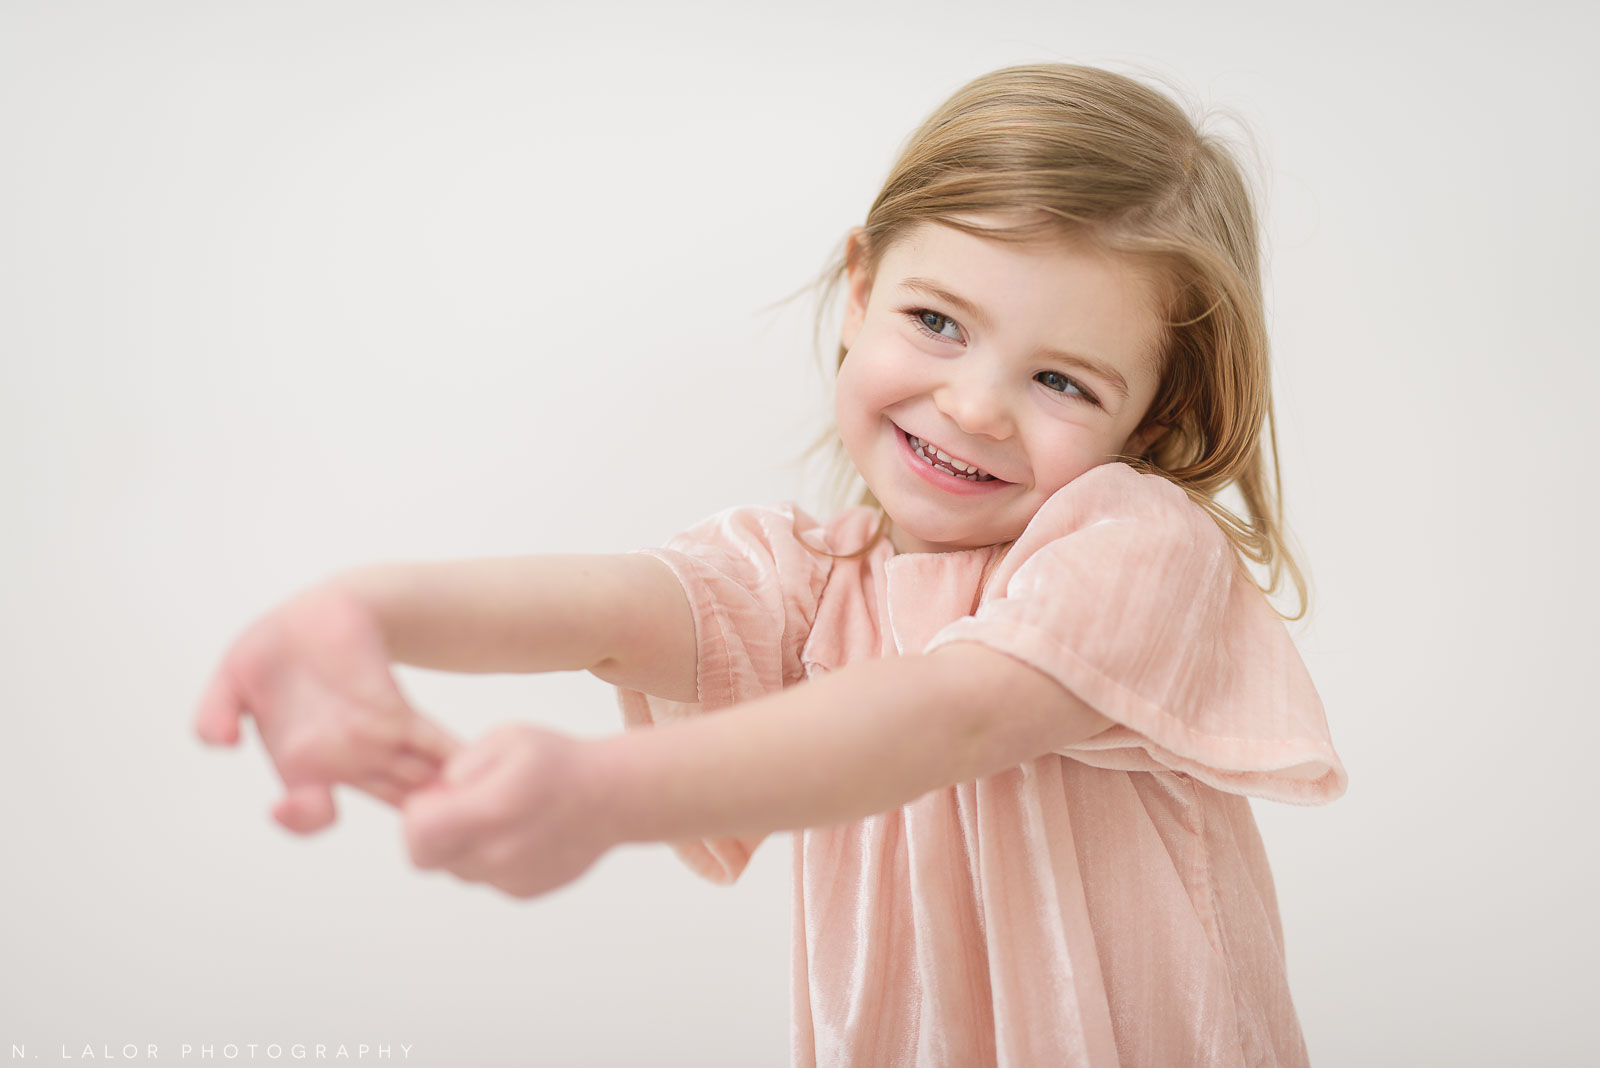 Image of an active preschooler, showing that she doesn't need to stay still in a photograph. Studio portrait by N. Lalor Photography in Greenwich, Connecticut.